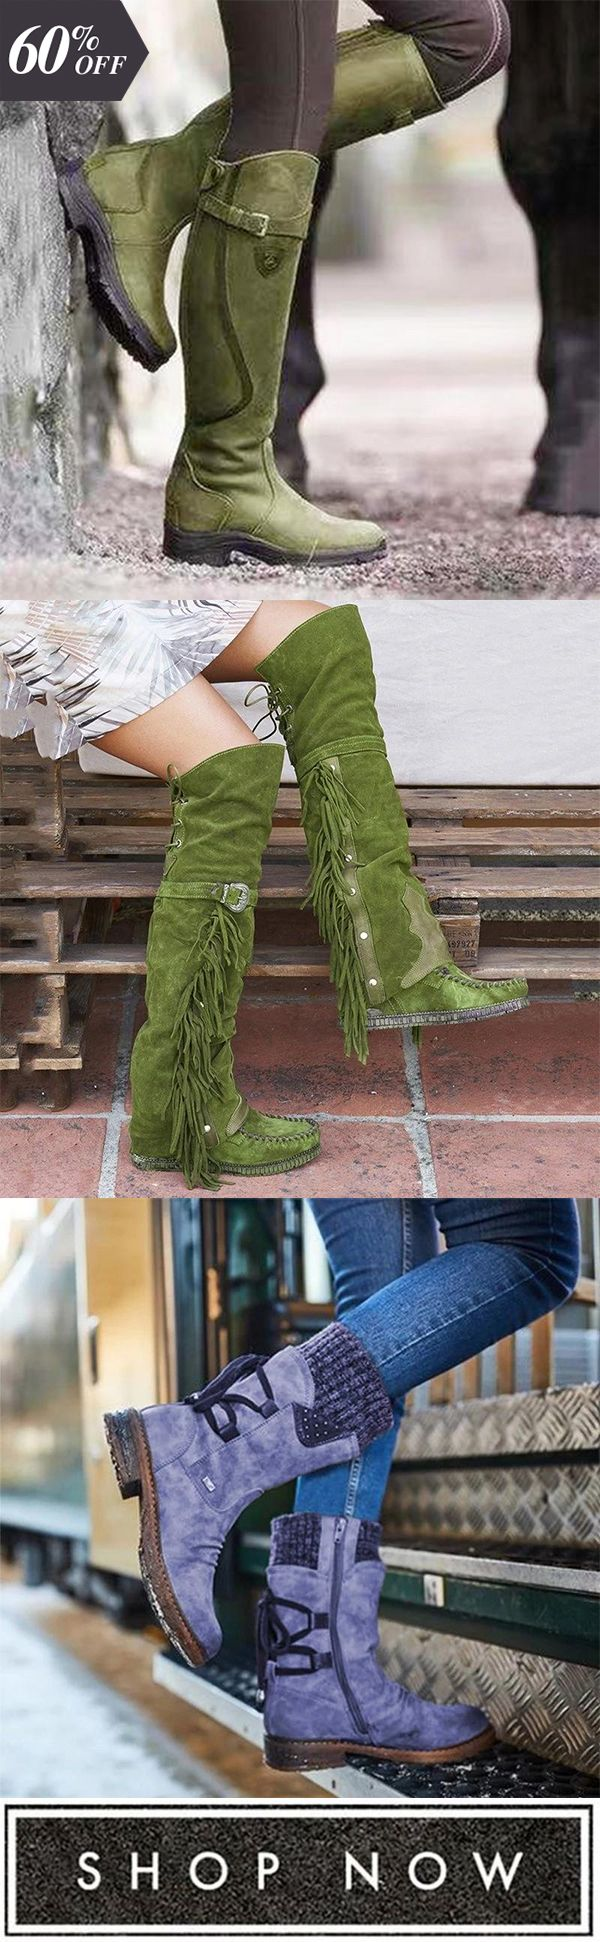 Photo of Warm&Fashion Boots, A Big Coupon For You